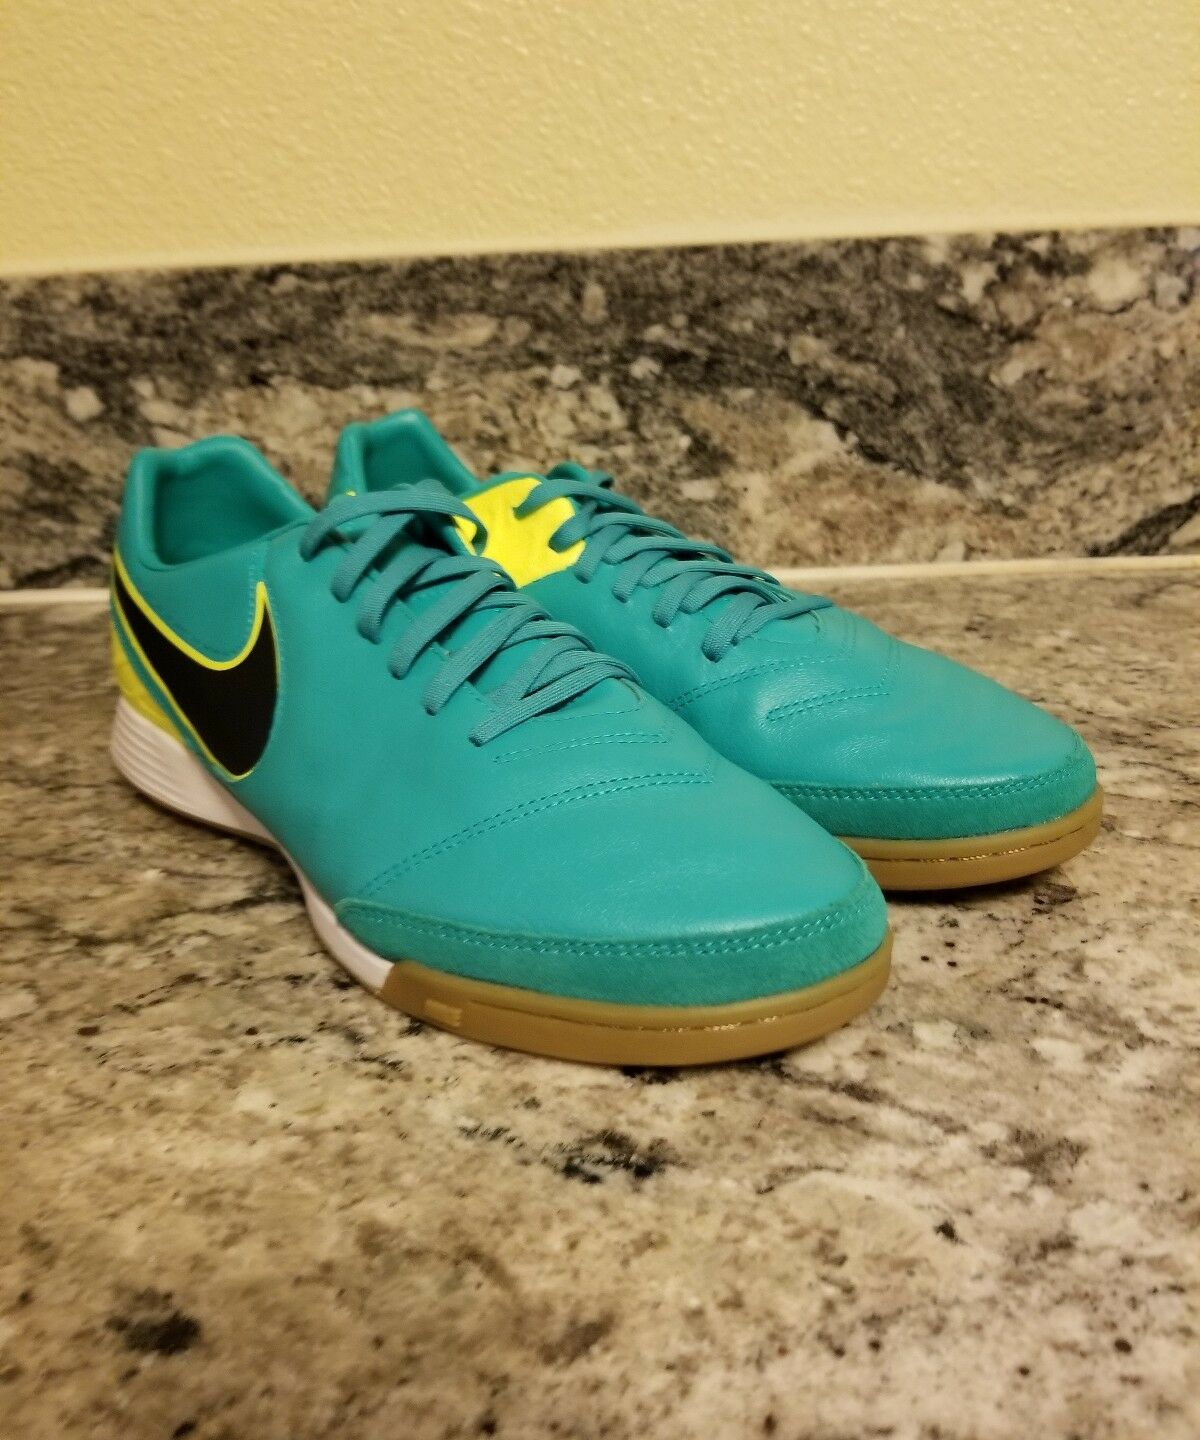 Nike Tiempo Mystic V IC Men's Indoor Soccer Shoes 819222 307 Comfortable Comfortable and good-looking